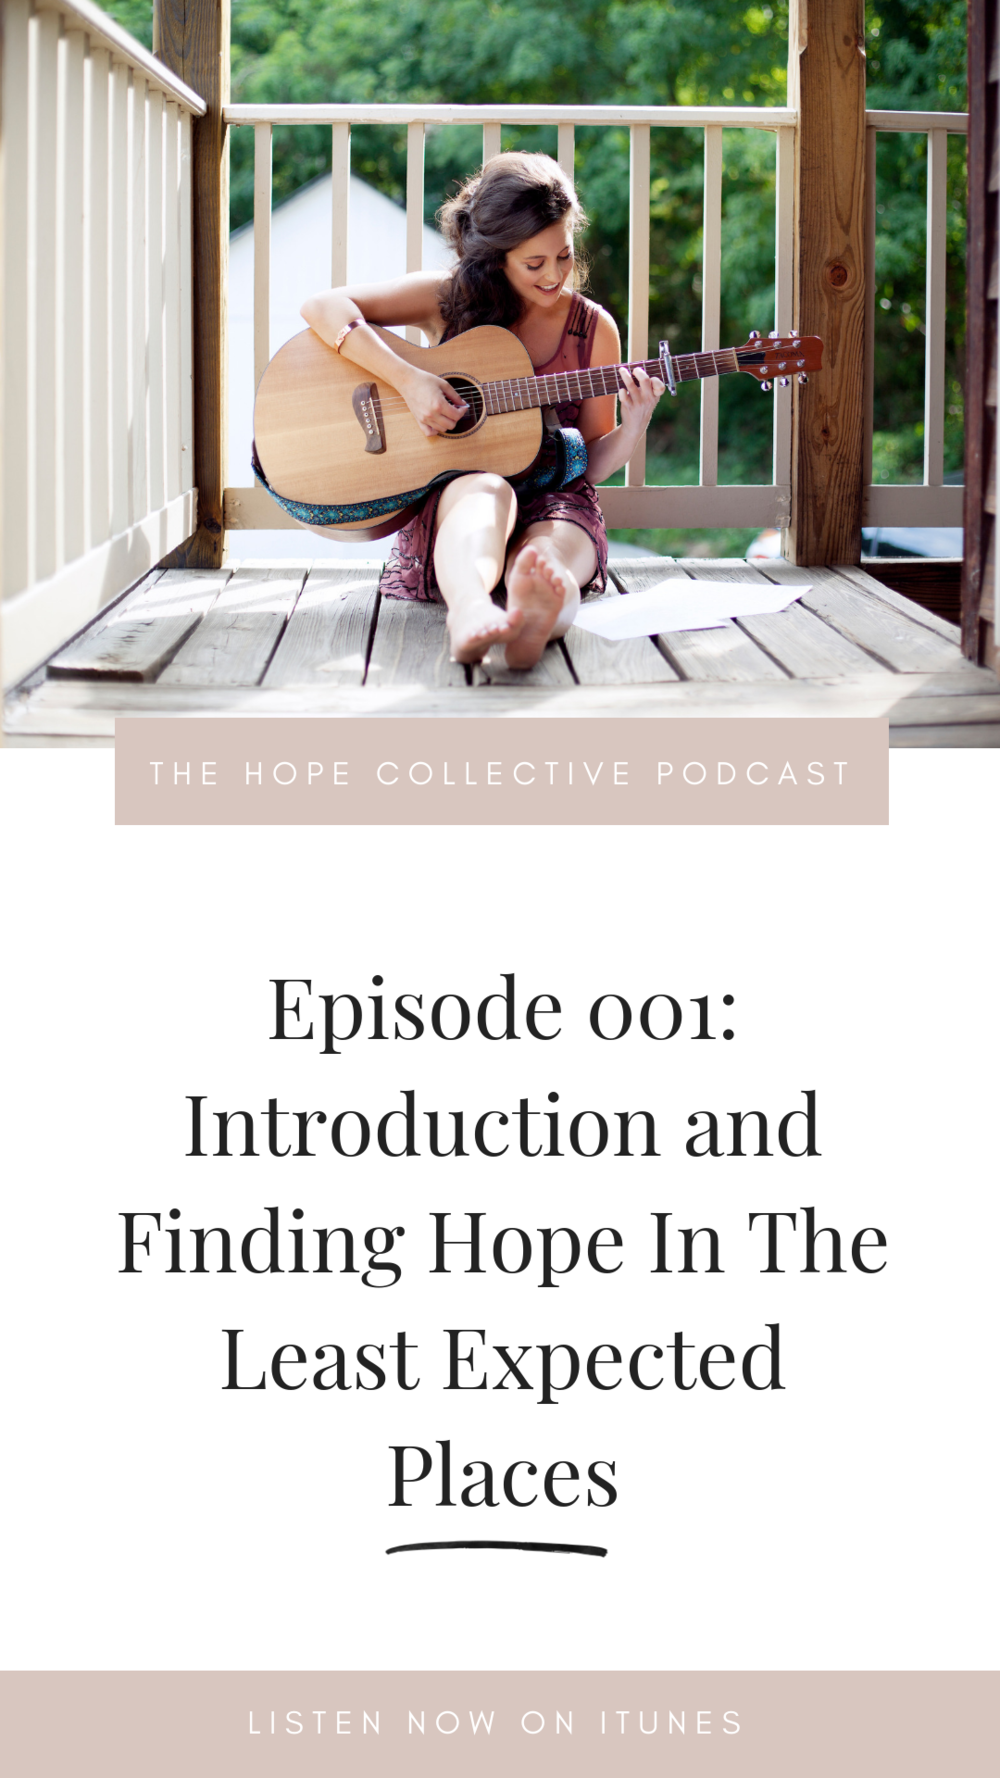 THE HOPE COLLECTIVE PODCAST - FINDING HOPE IN THE LEAST EXPECTED PLACES